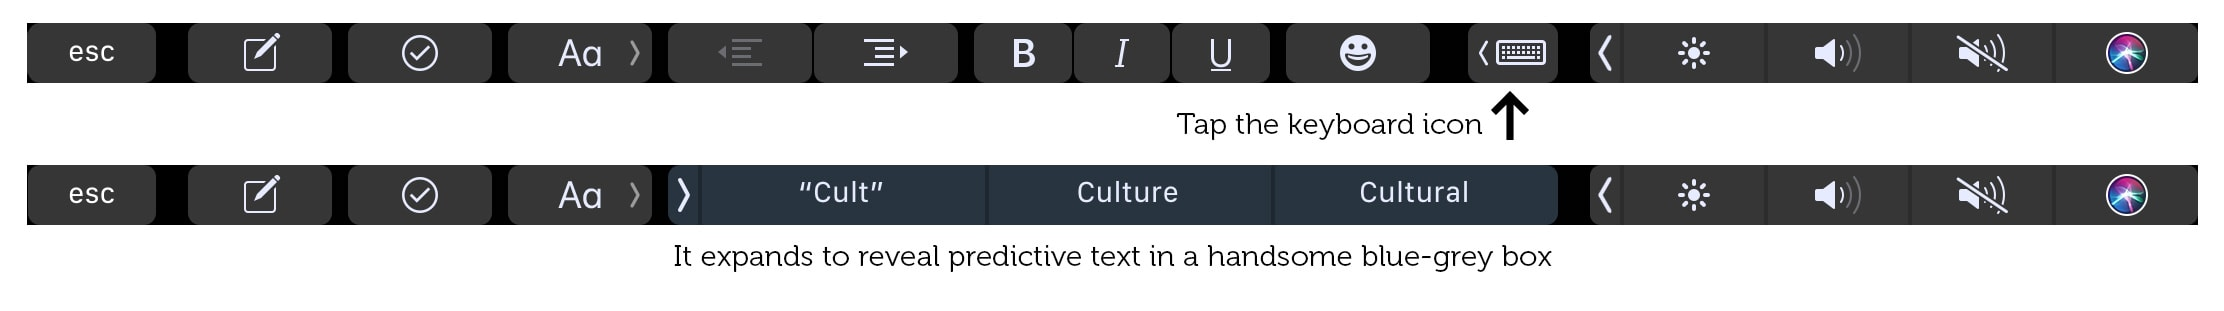 Get predictive text suggestions, just like the iOS keyboard